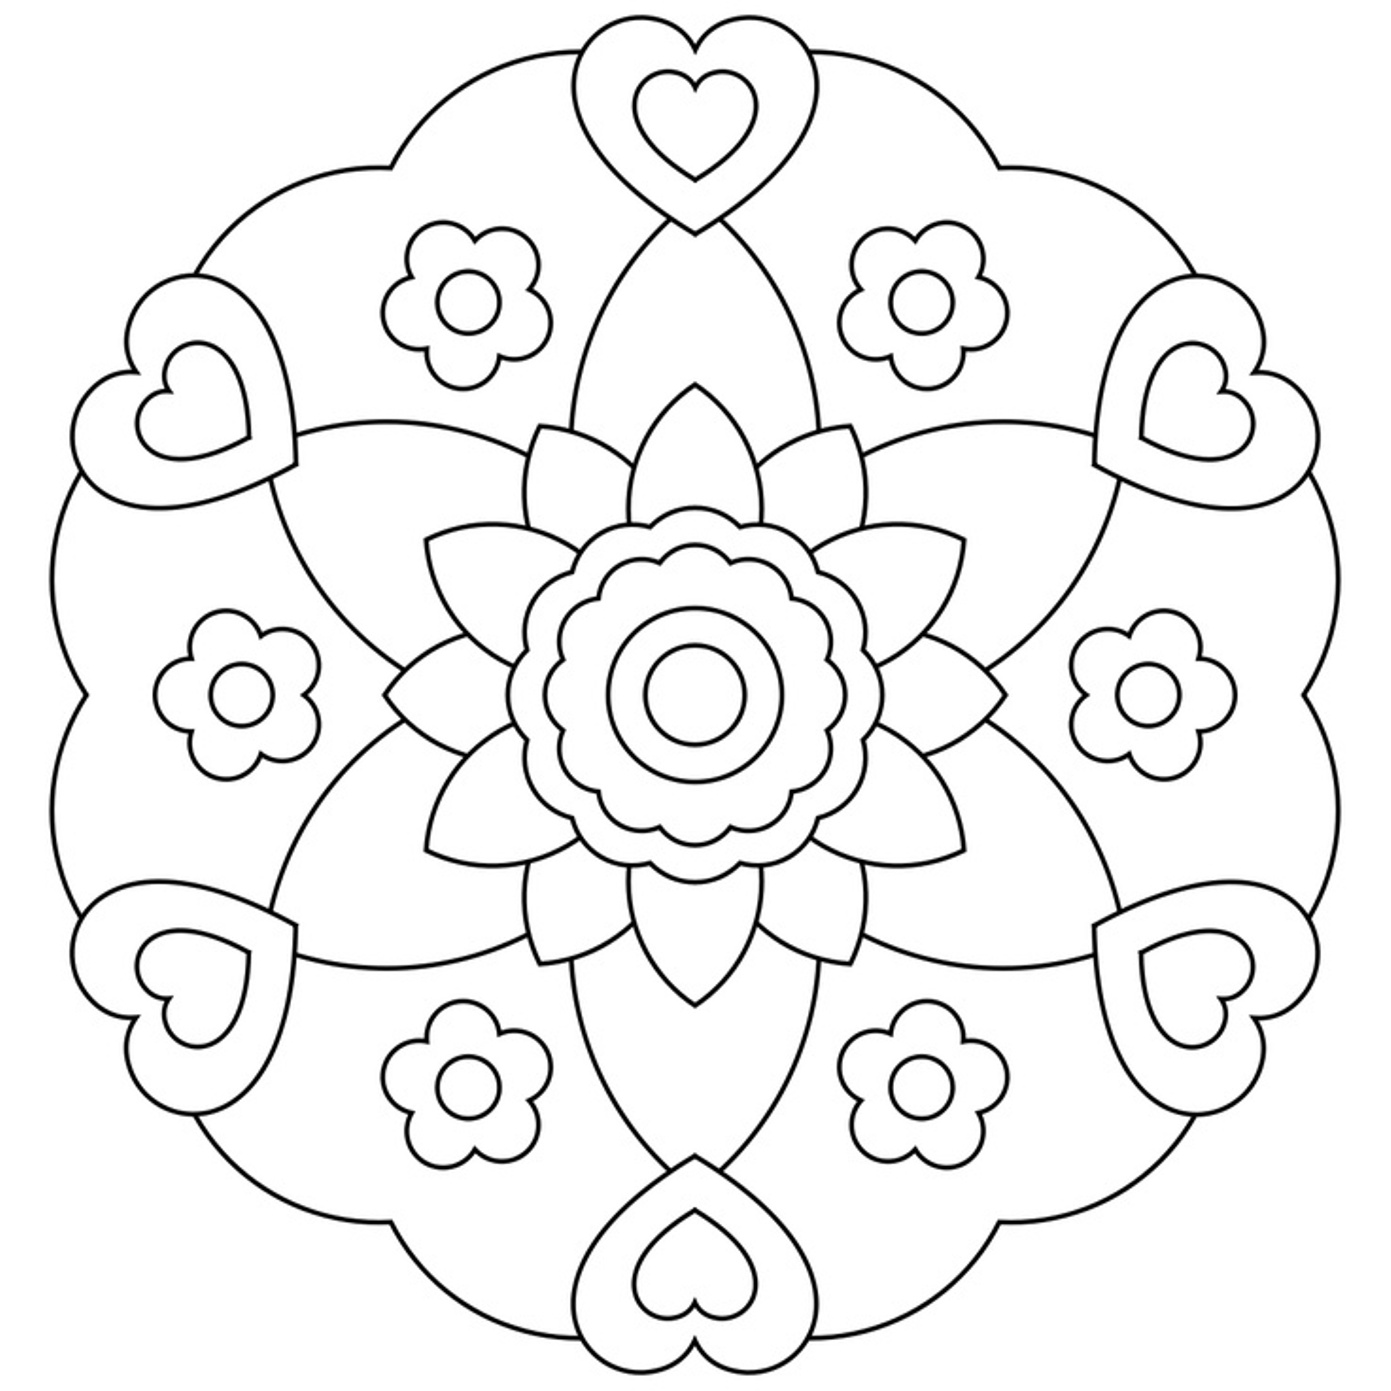 mandalas to color free free printable mandalas for kids best coloring pages for color mandalas to free